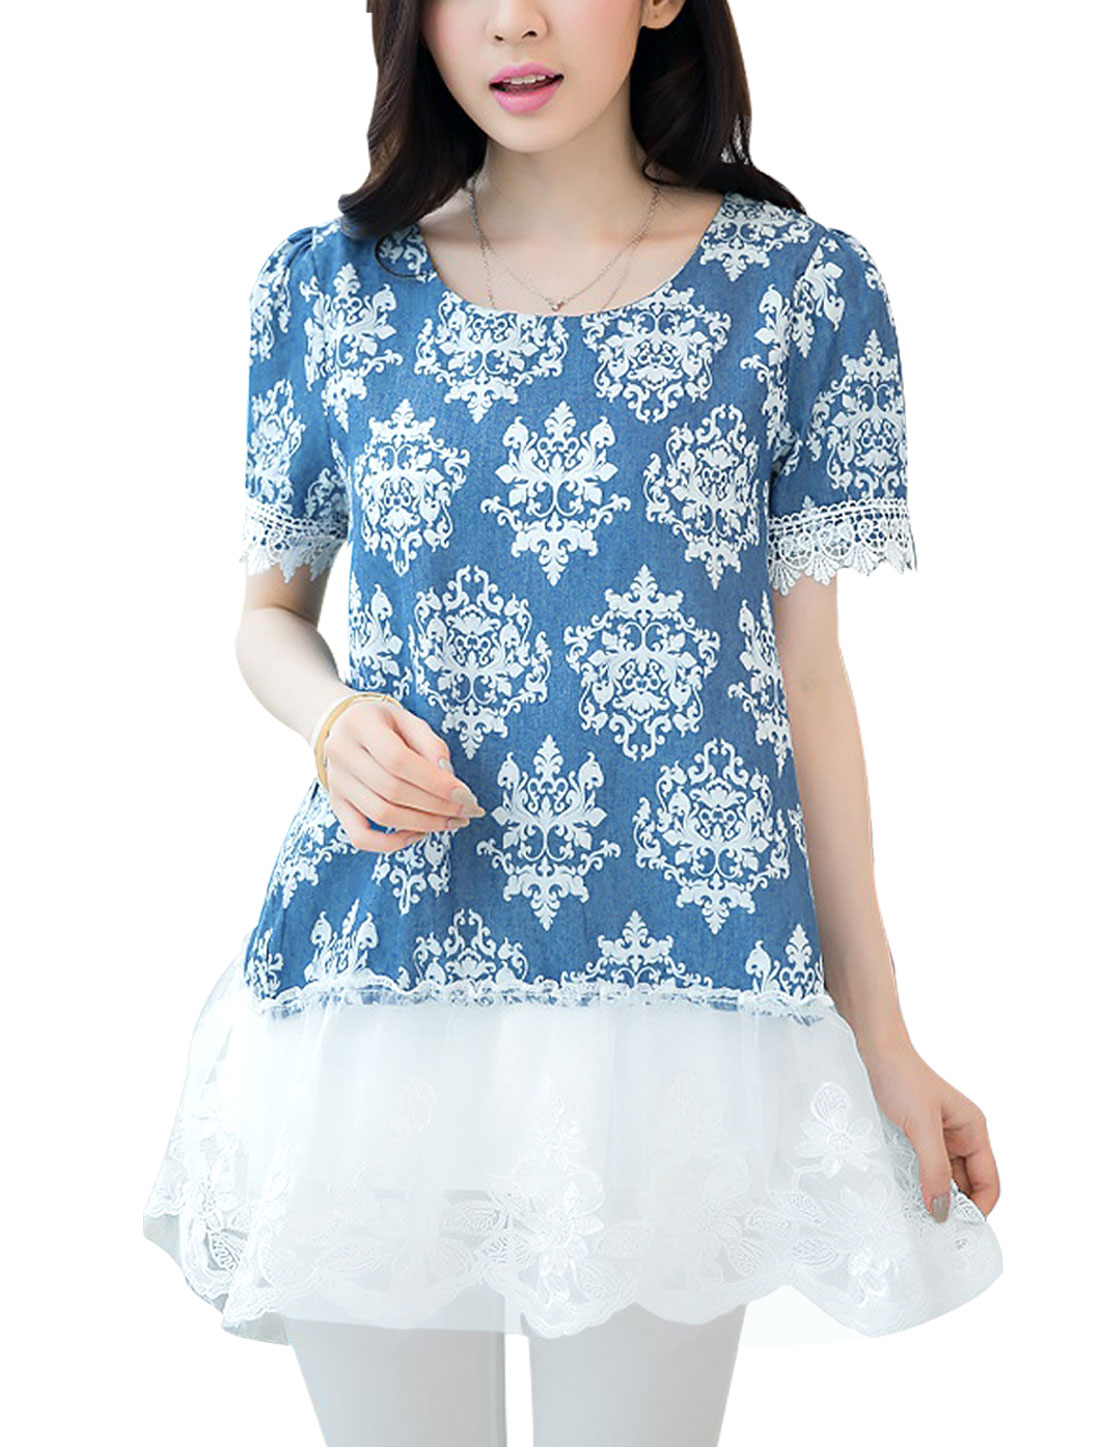 Lady Porcelain Print Organza Panel Short Sleeve Blouse Blue White S